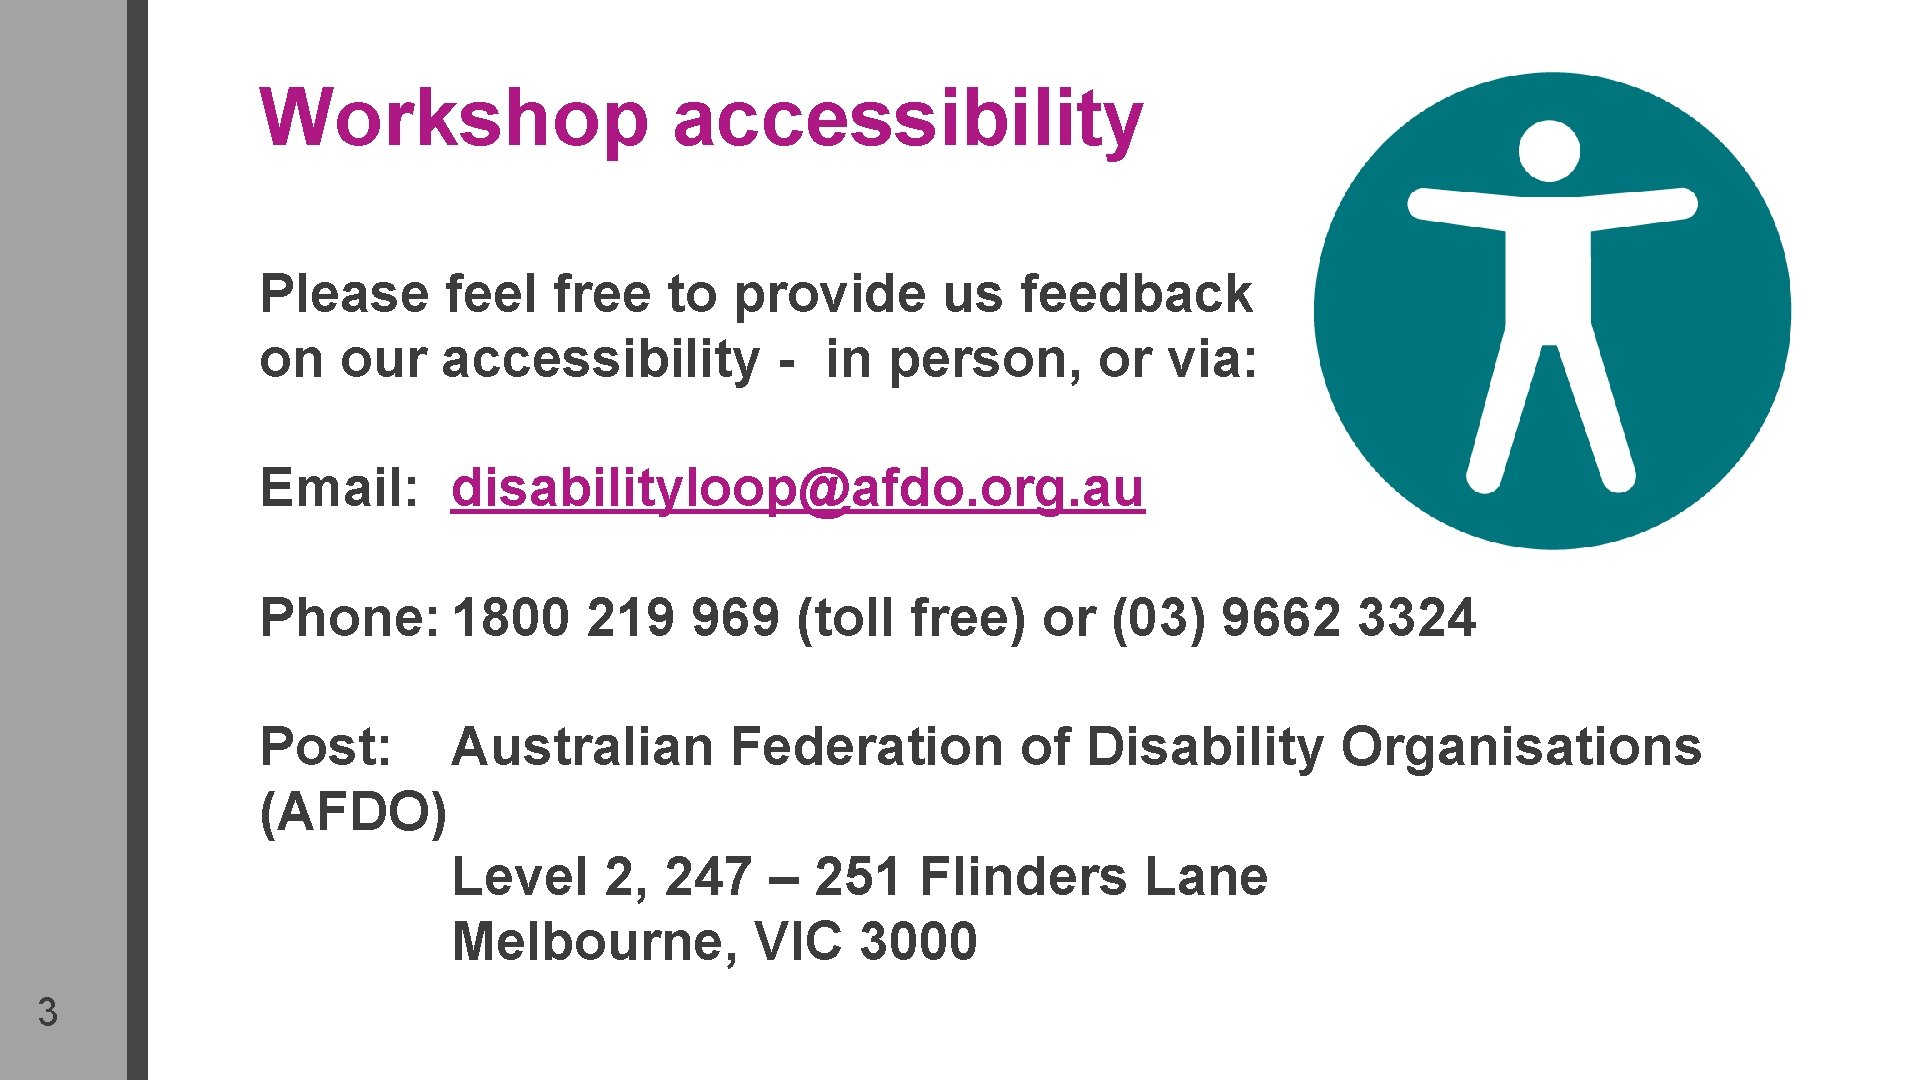 Workshop accessibility Please feel free to provide us feedback on our accessibility - in